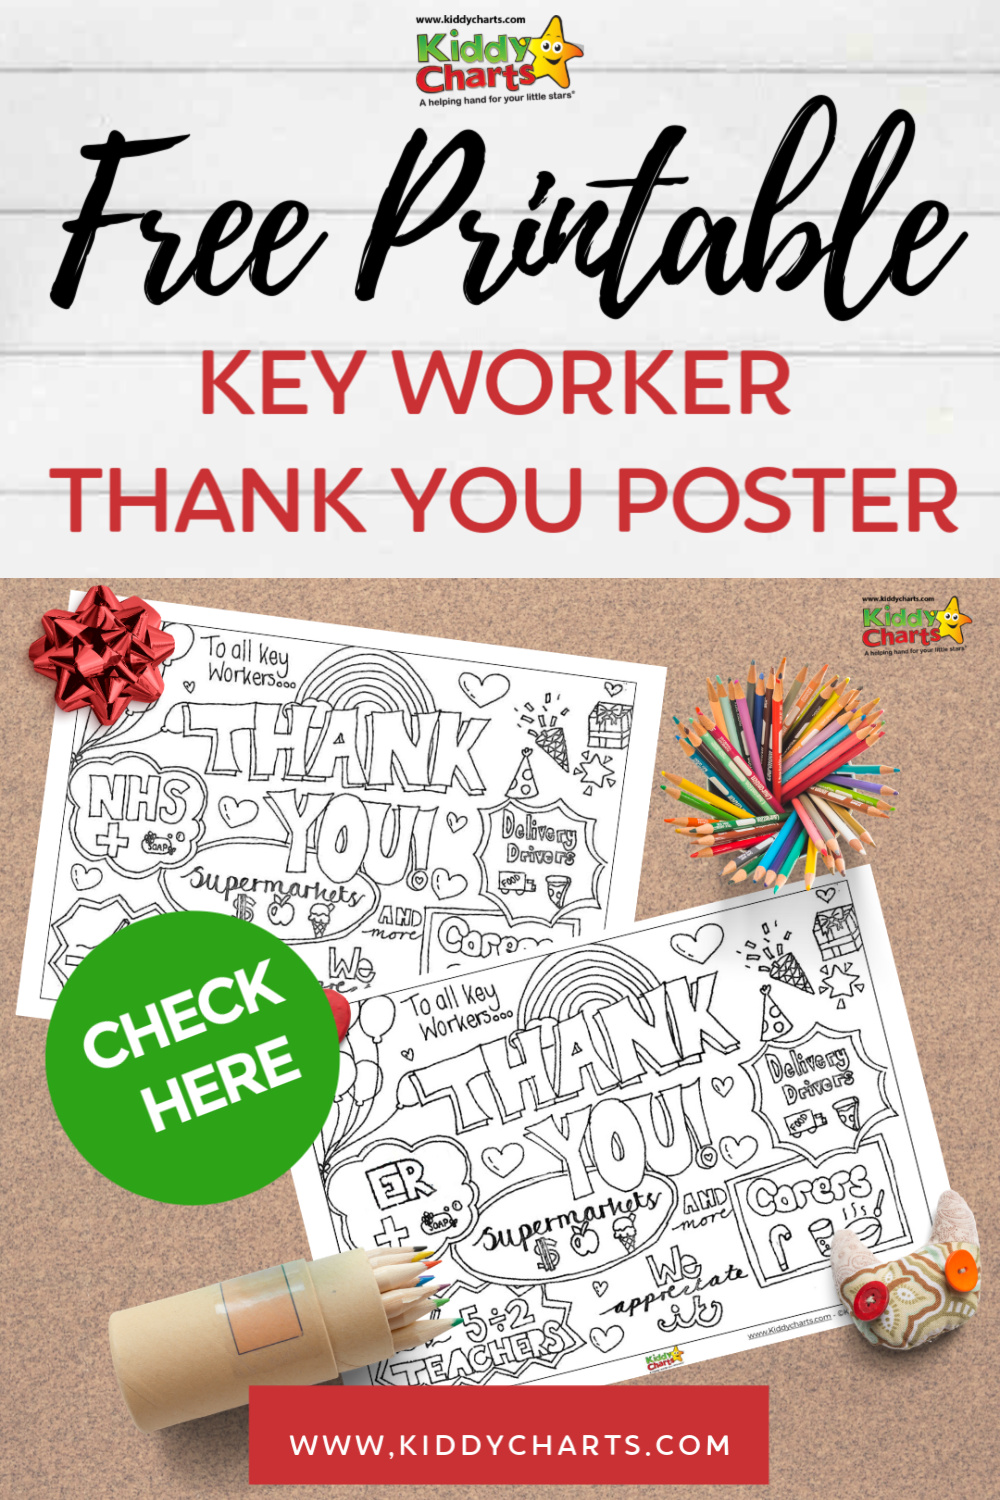 Free printable key worker thank you poster